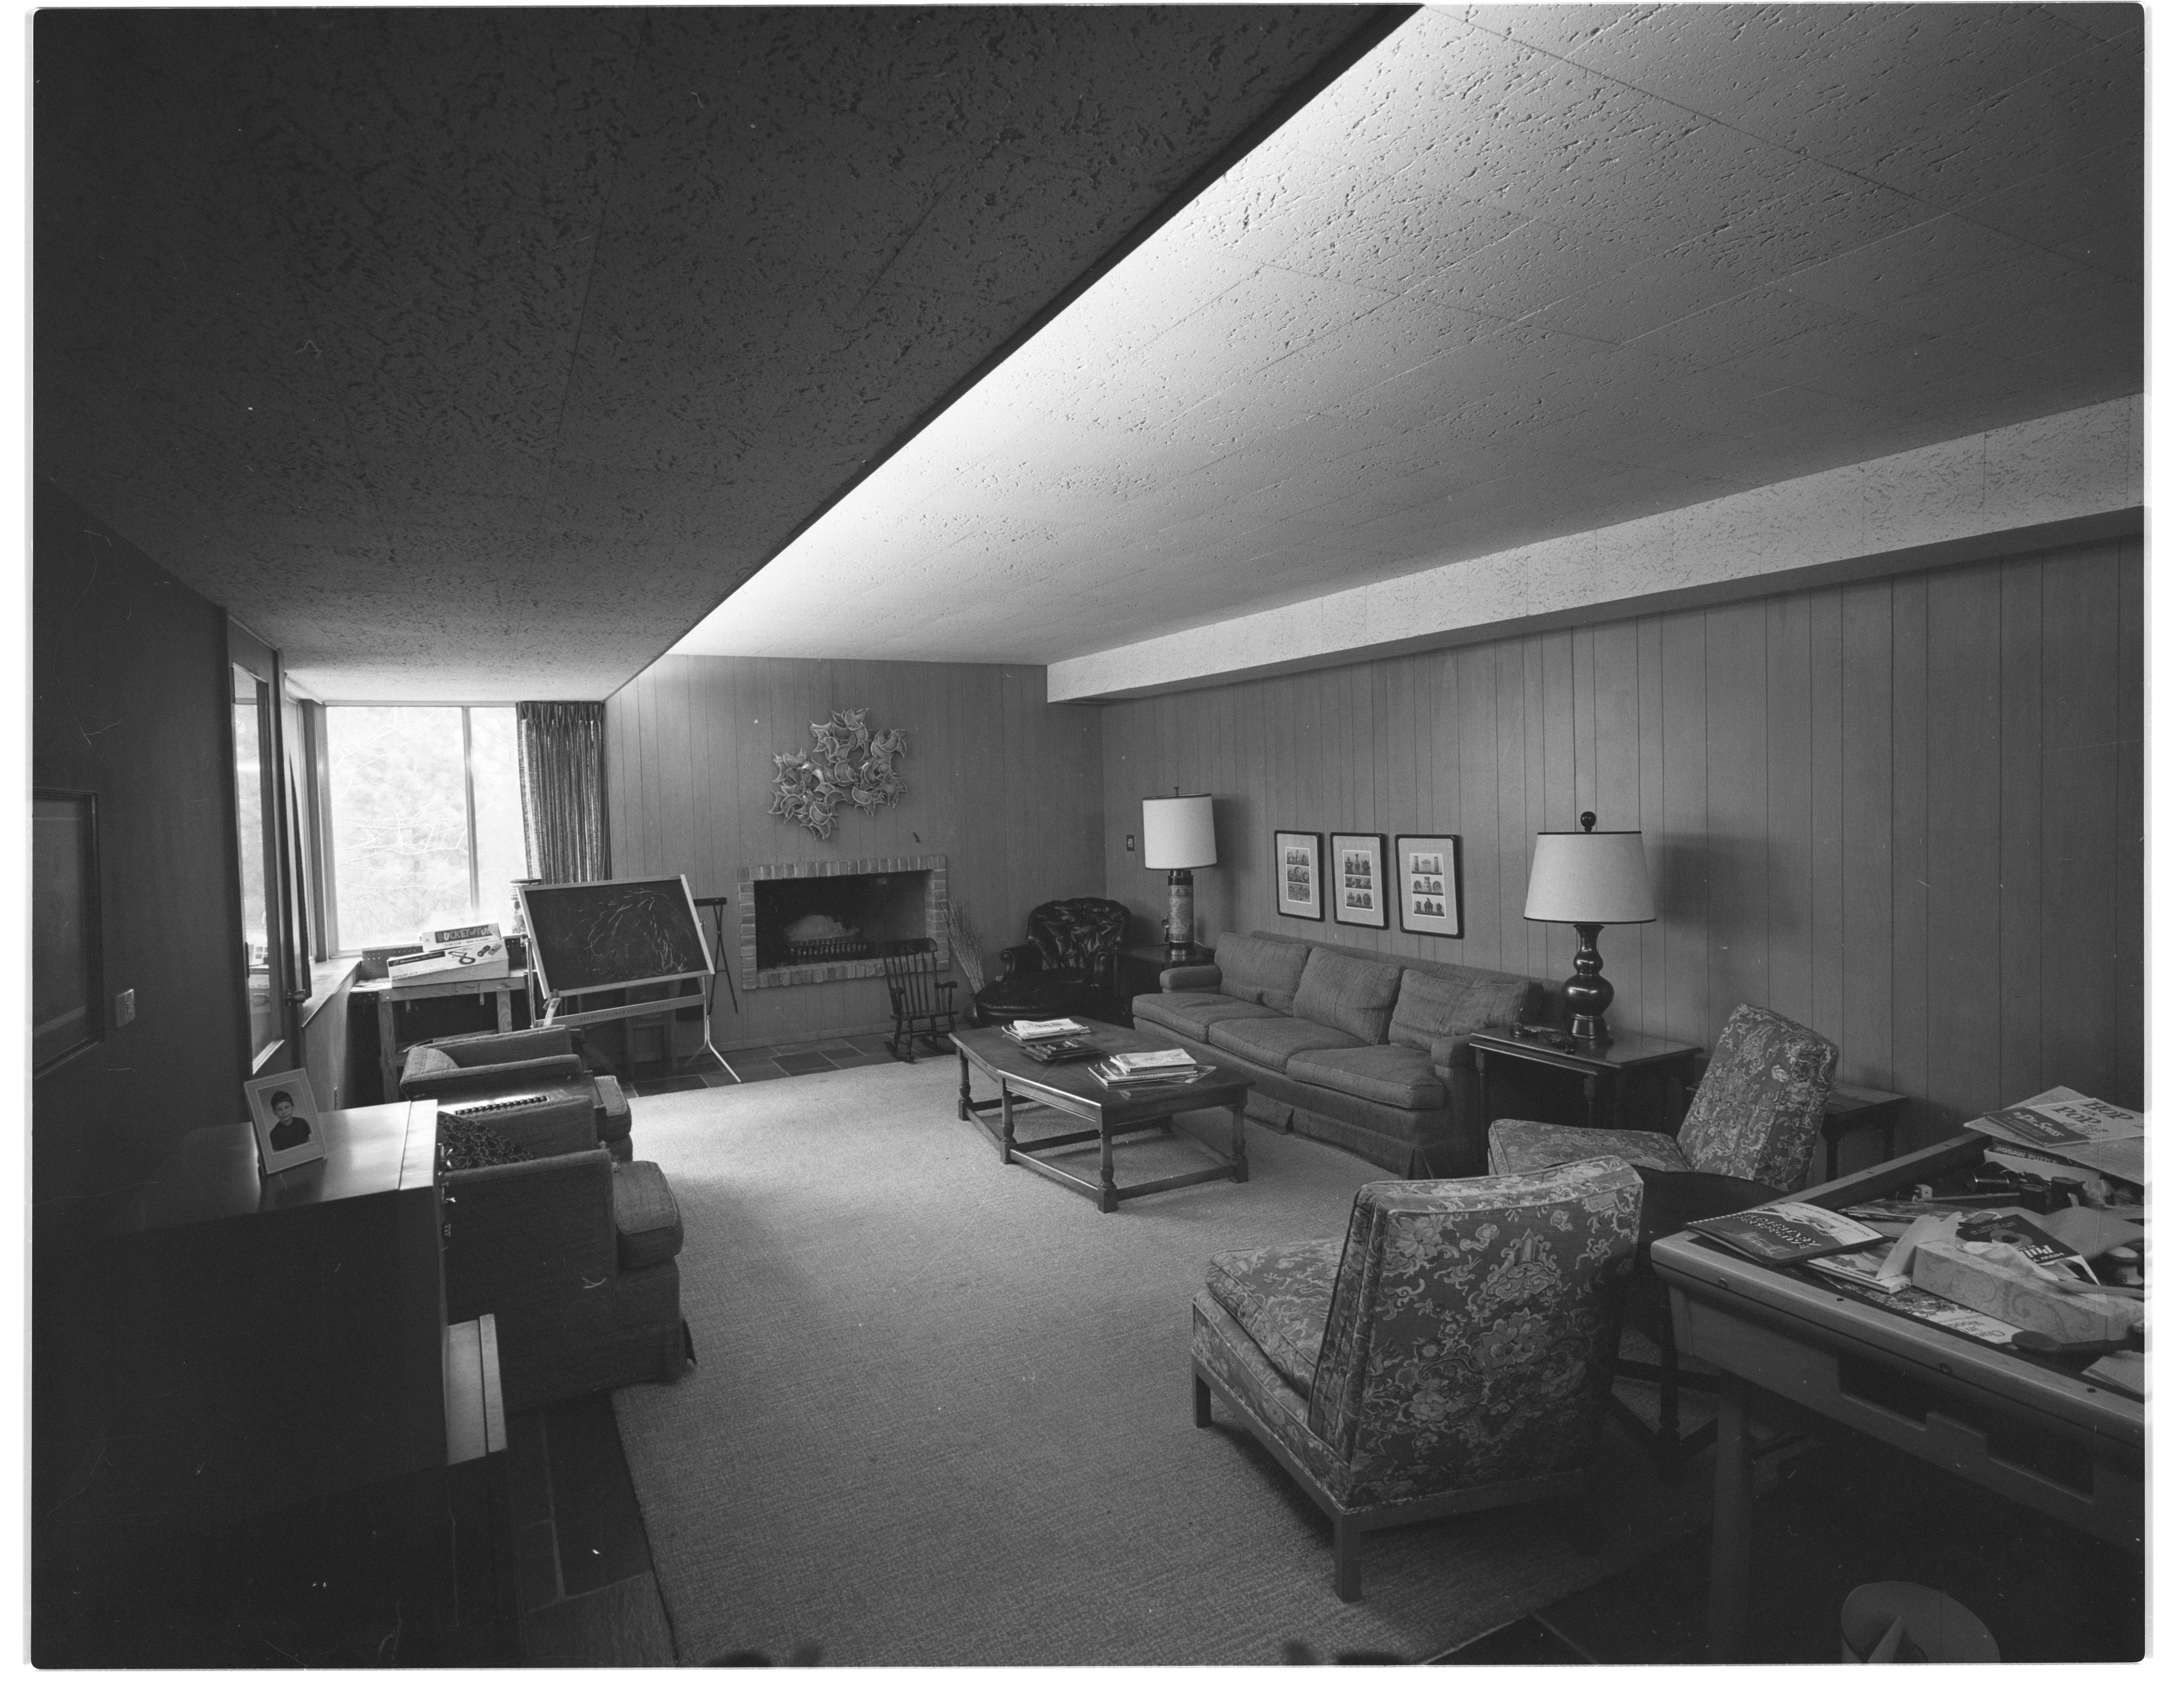 Recessed Lighting a Feature of Mrs. Henry Wege Home, April 1969 image